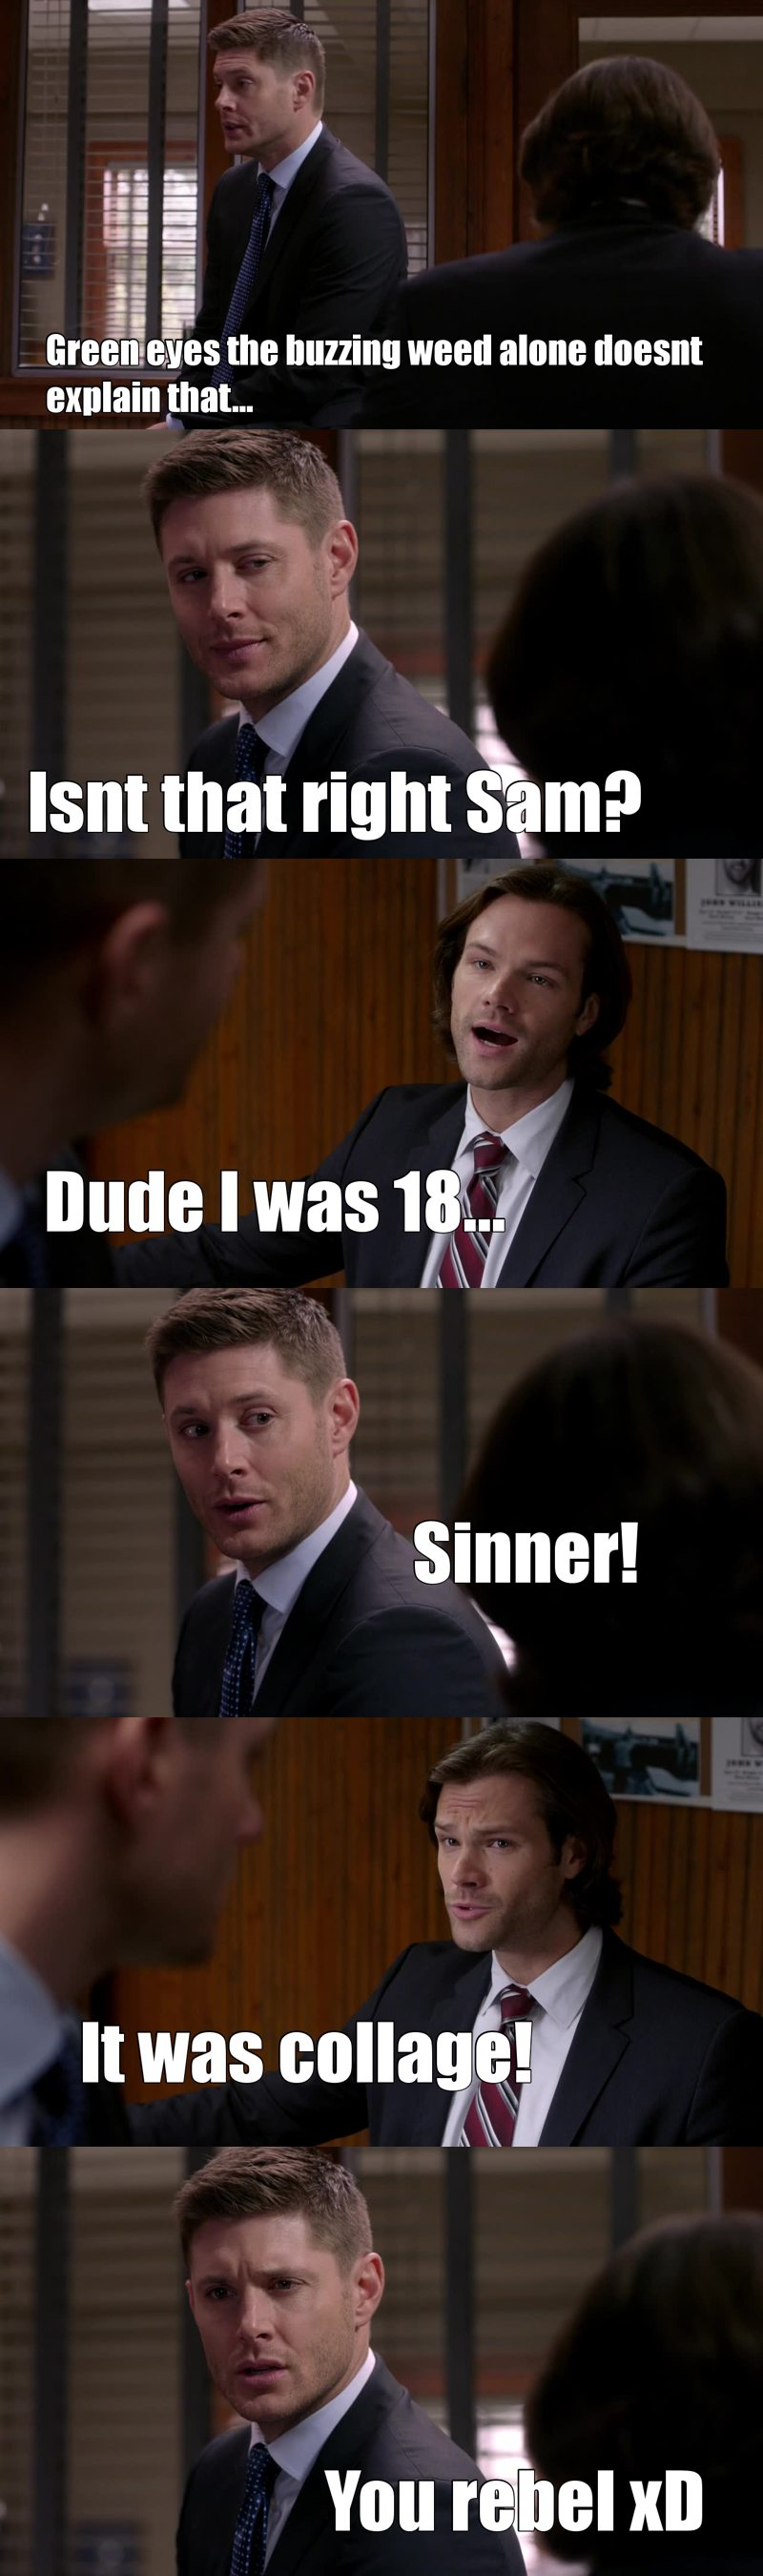 Hahaha I always knew Dean was the good son xD